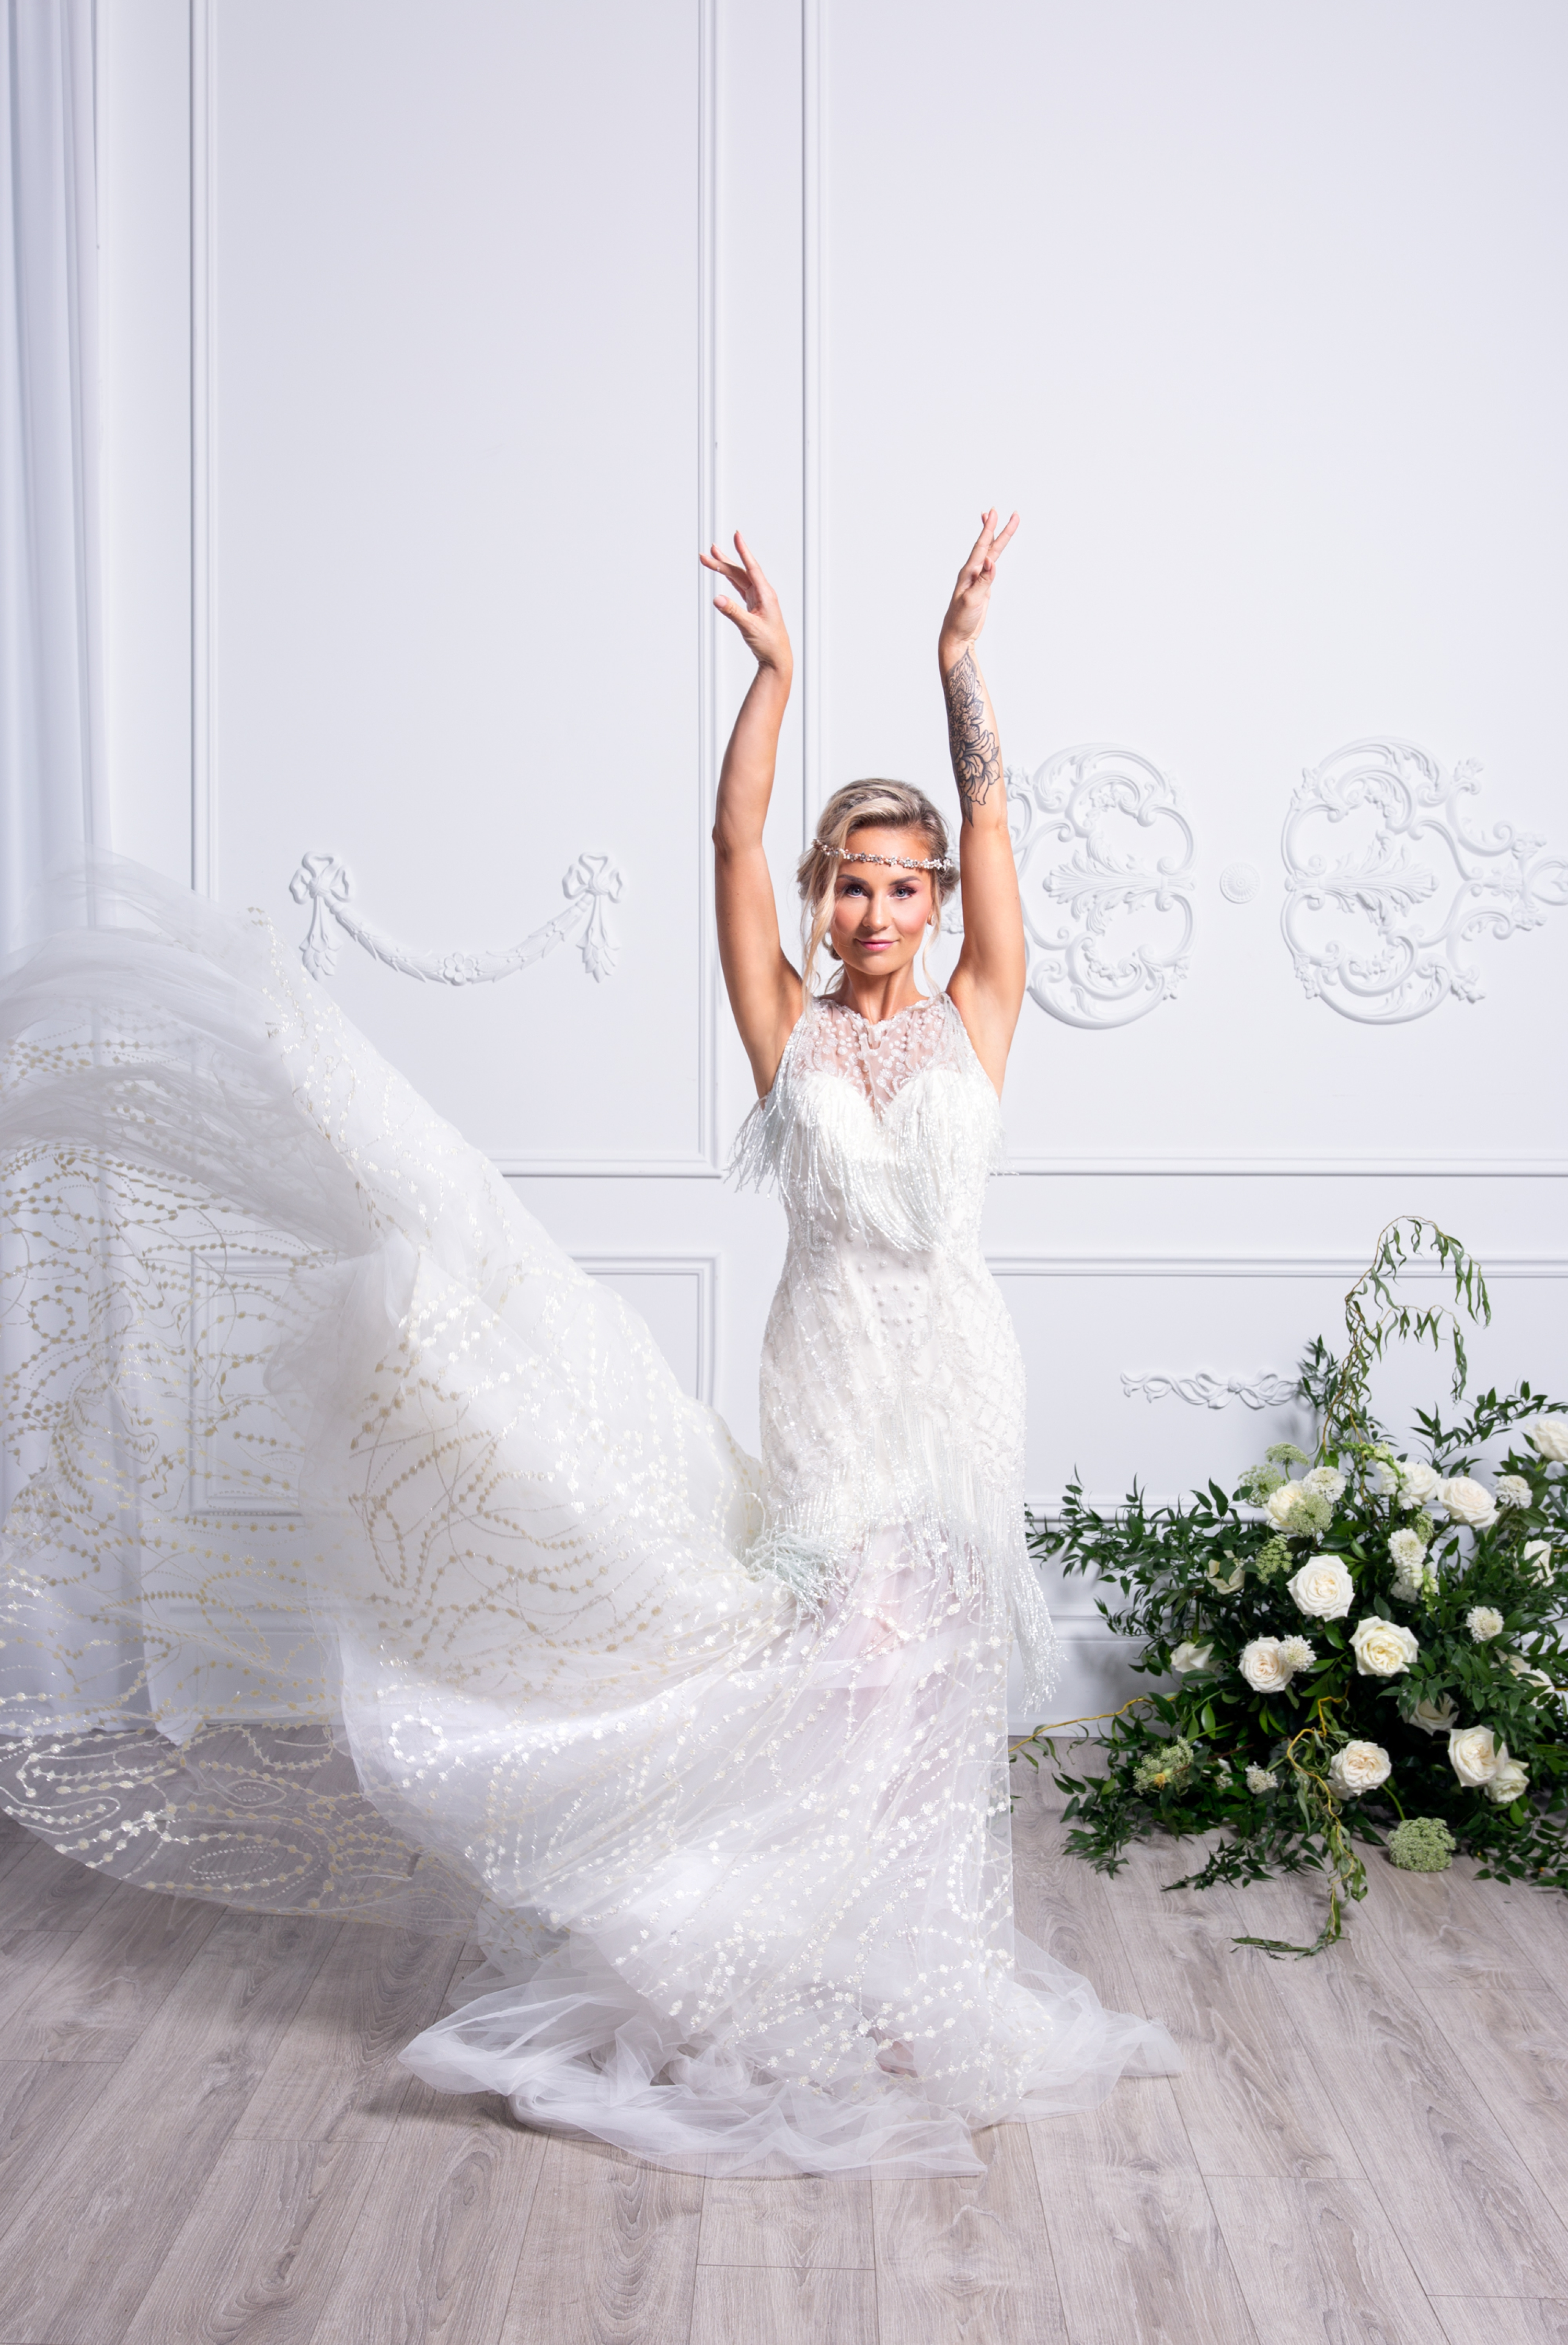 Bride Dance Movement In Love Styled Wedding Zsuzsi Pal Photography